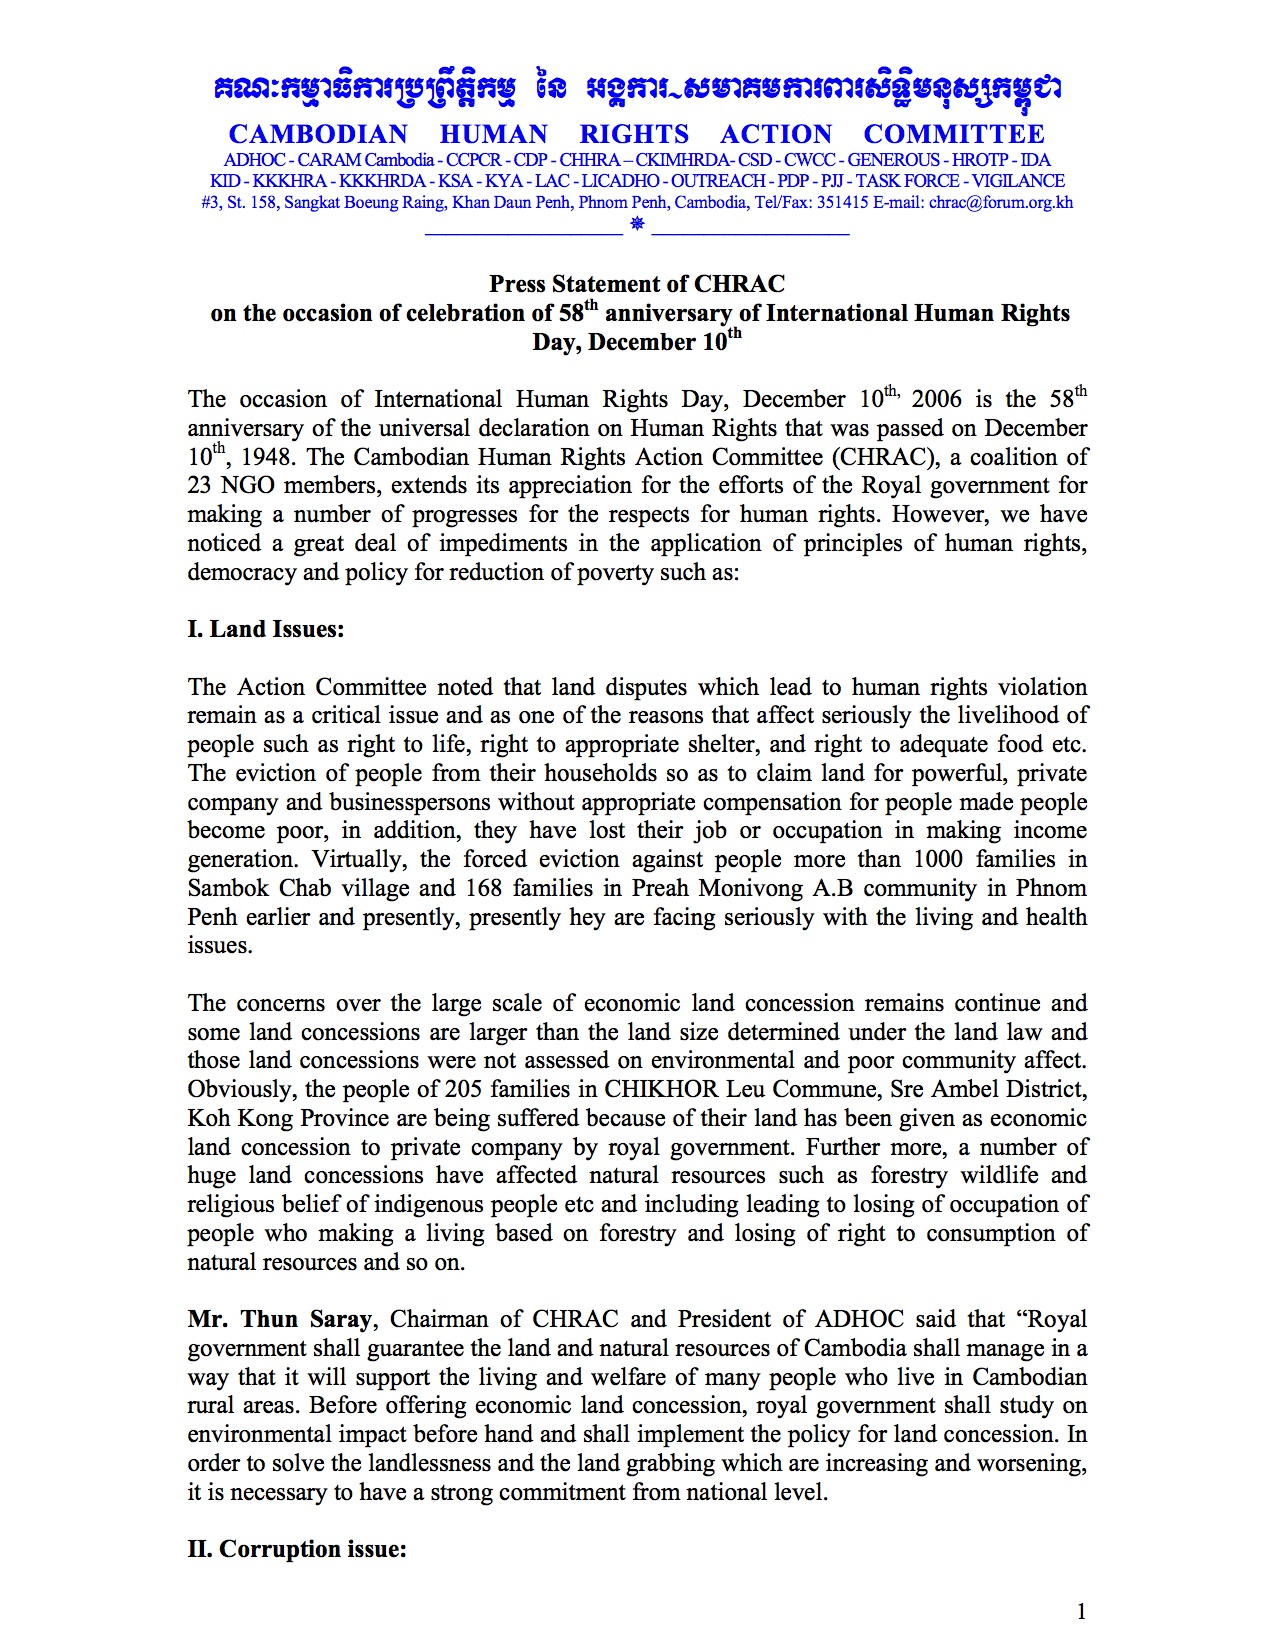 Chrac governance and corruption press release ti cambodia chrac governance and corruption press release thecheapjerseys Images